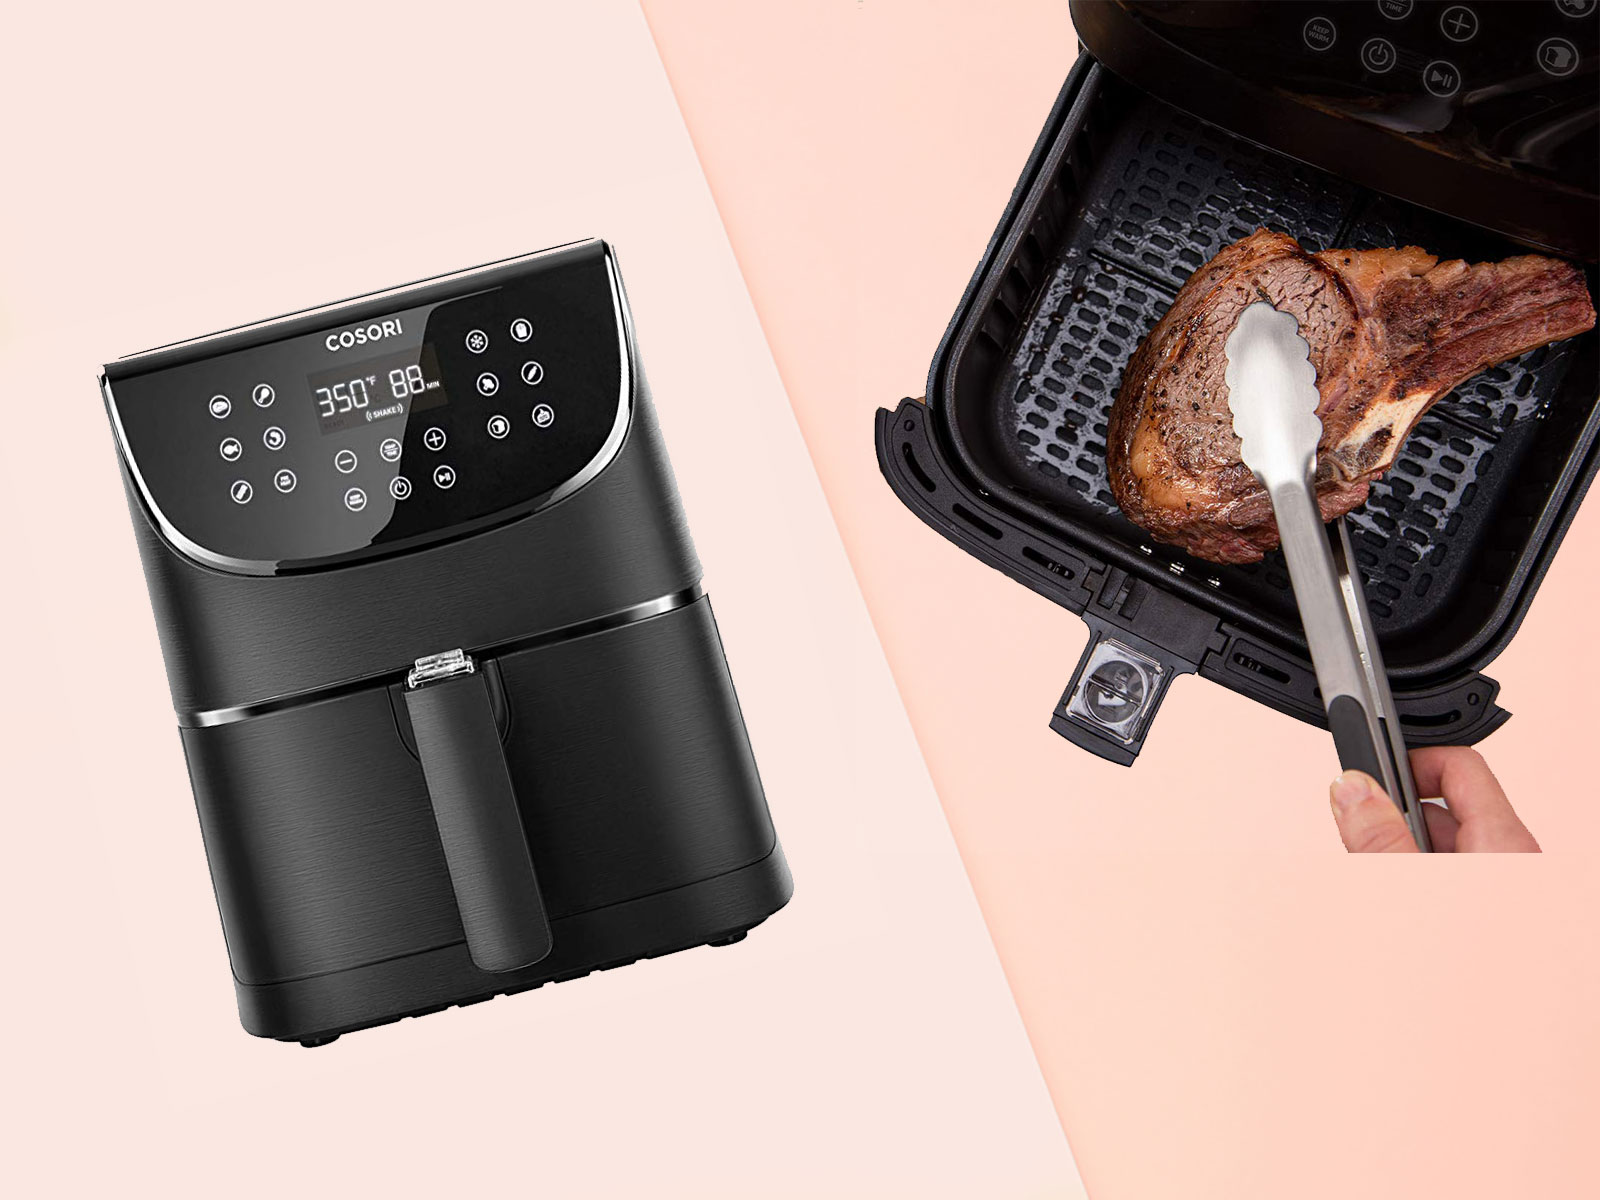 Hot Deal! Amazon's Best-Selling Air Fryer Is on Sale for Under $100